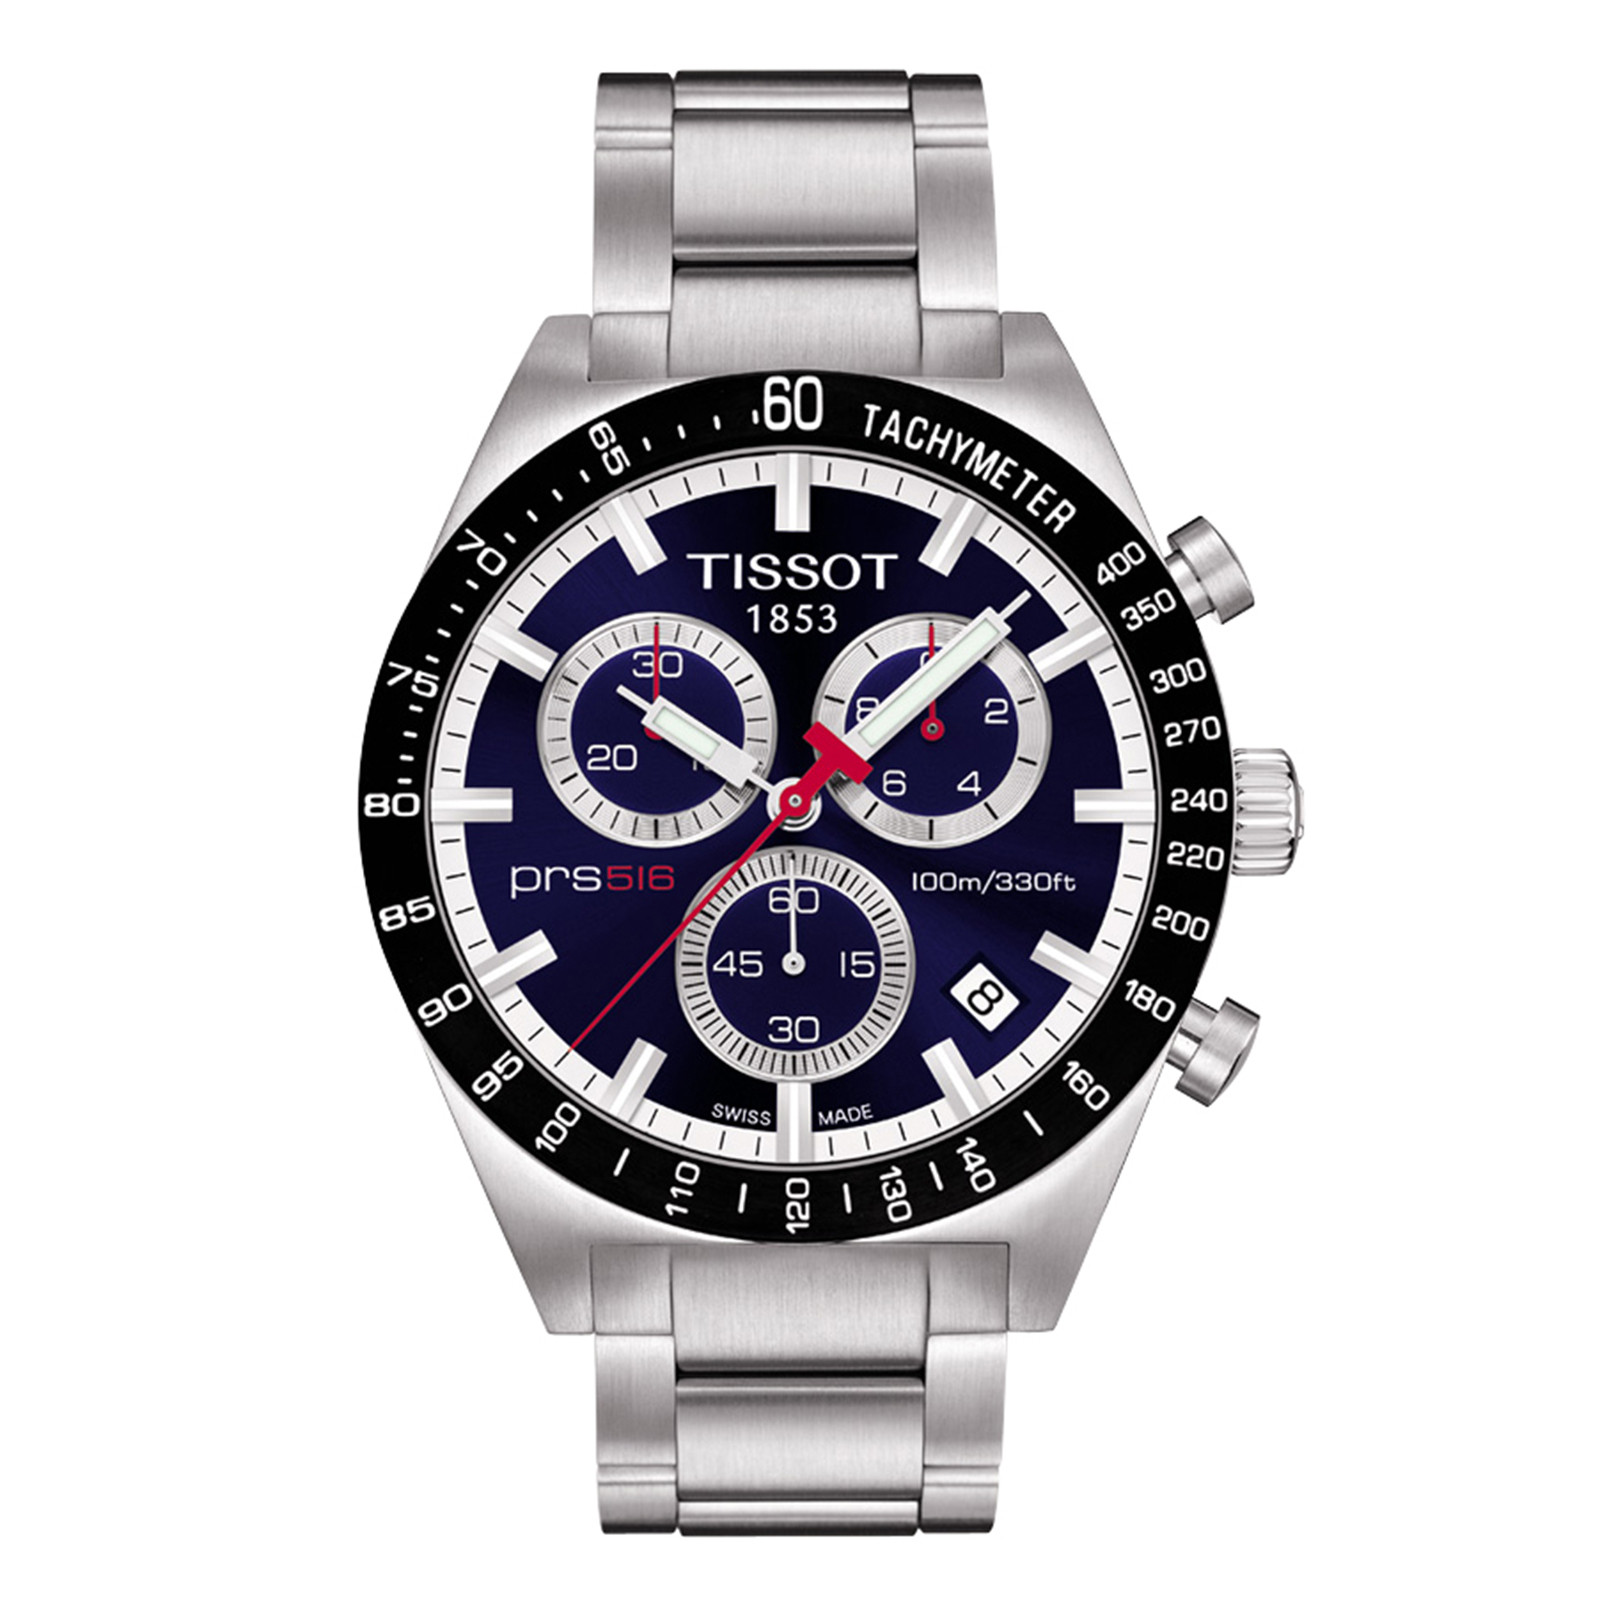 New Men's Tissot PRS516 Chronograph